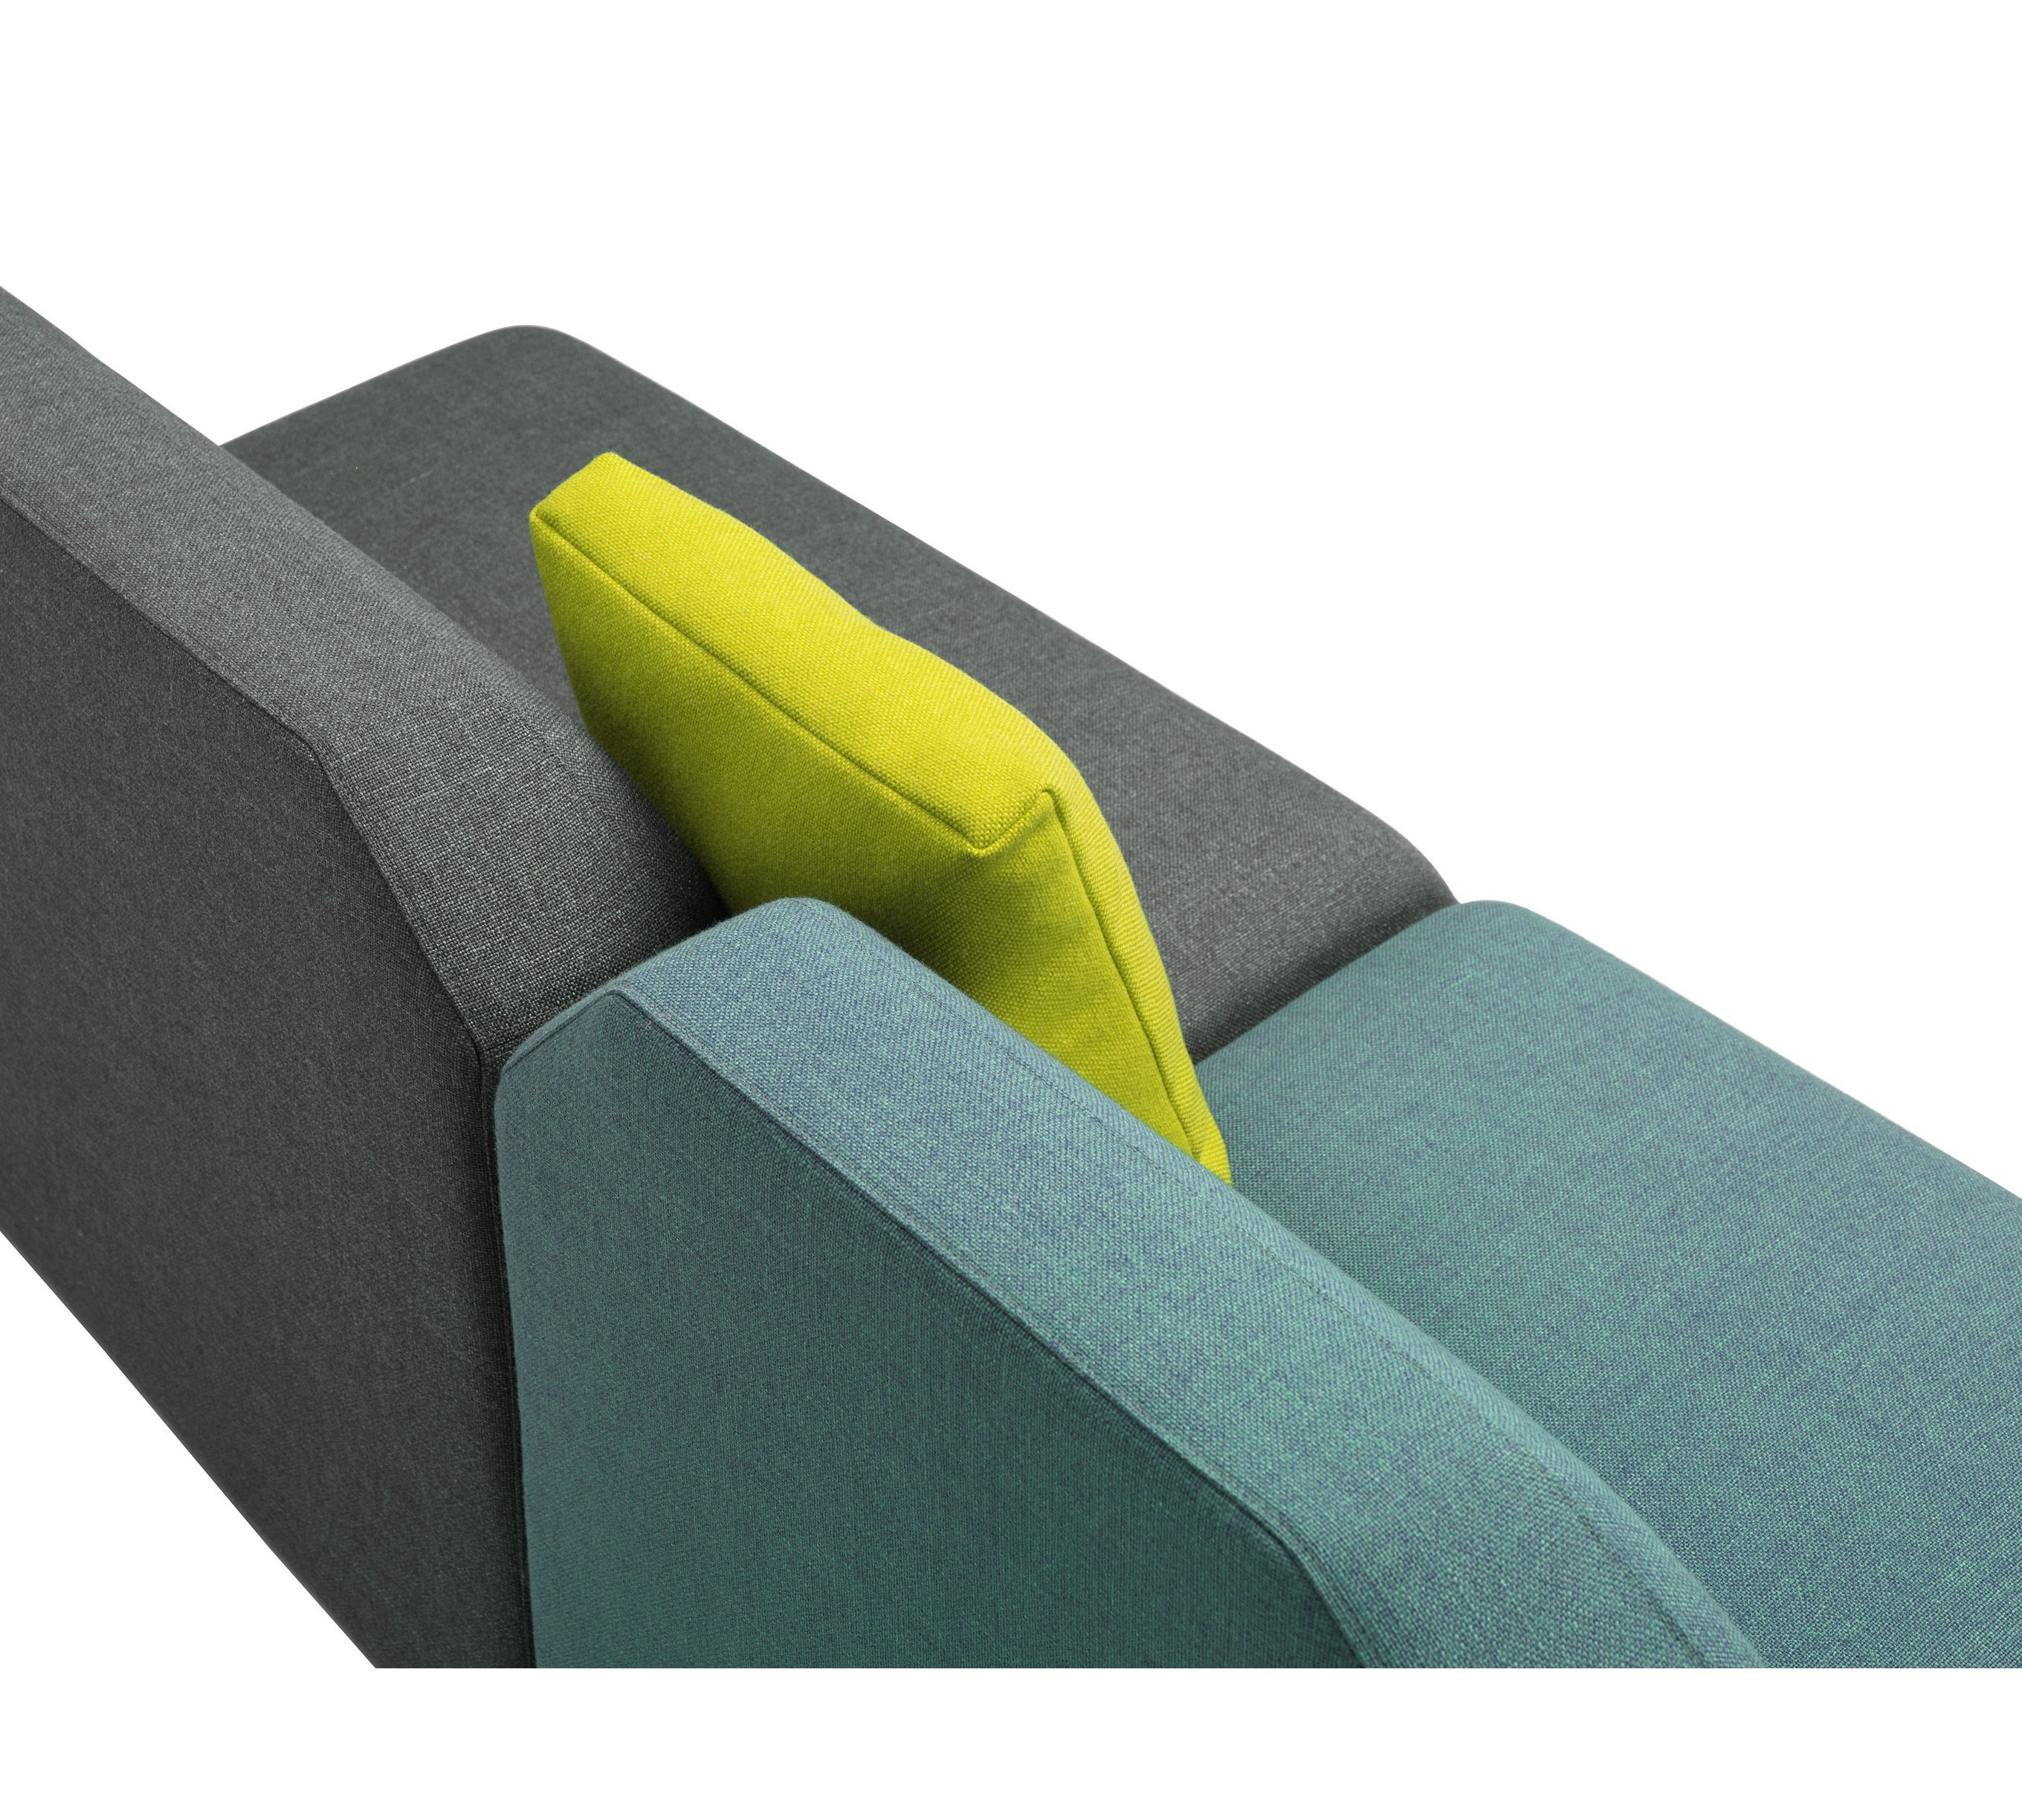 Cumulus Sectional Sofa (with Cirrus Cushions) By Jonas Wagell For Mitab